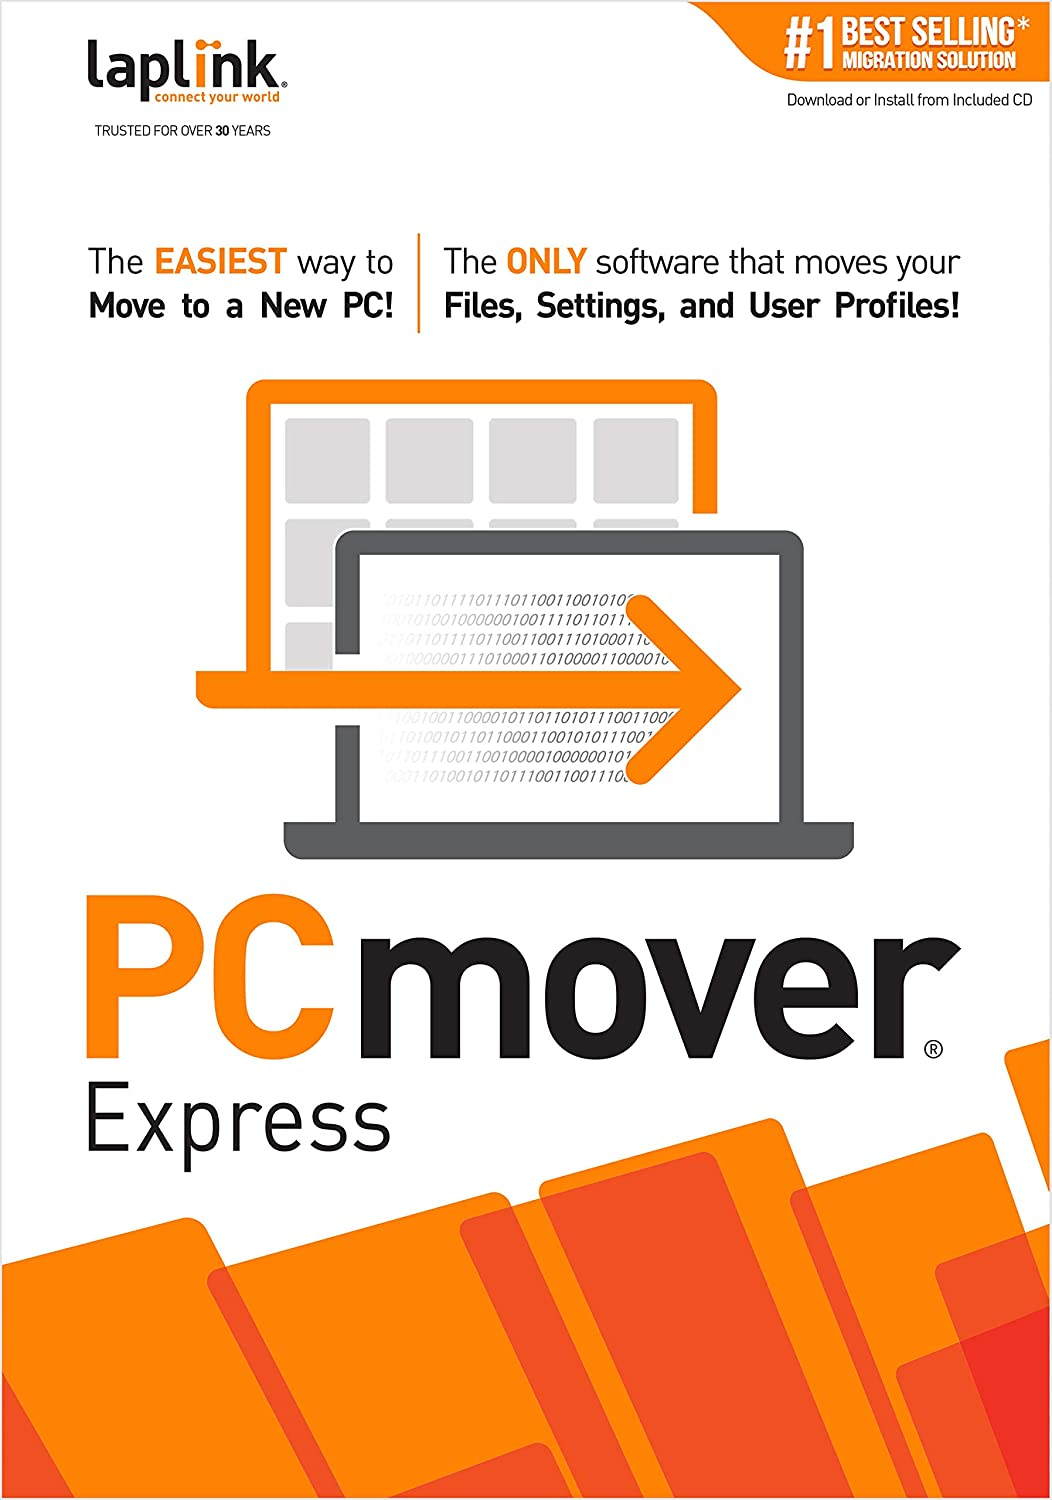 Laplink PCmover Express | Instant Download | Single Use License | Moves Files, and Settings to Your New PC 71bUd7YaD7L